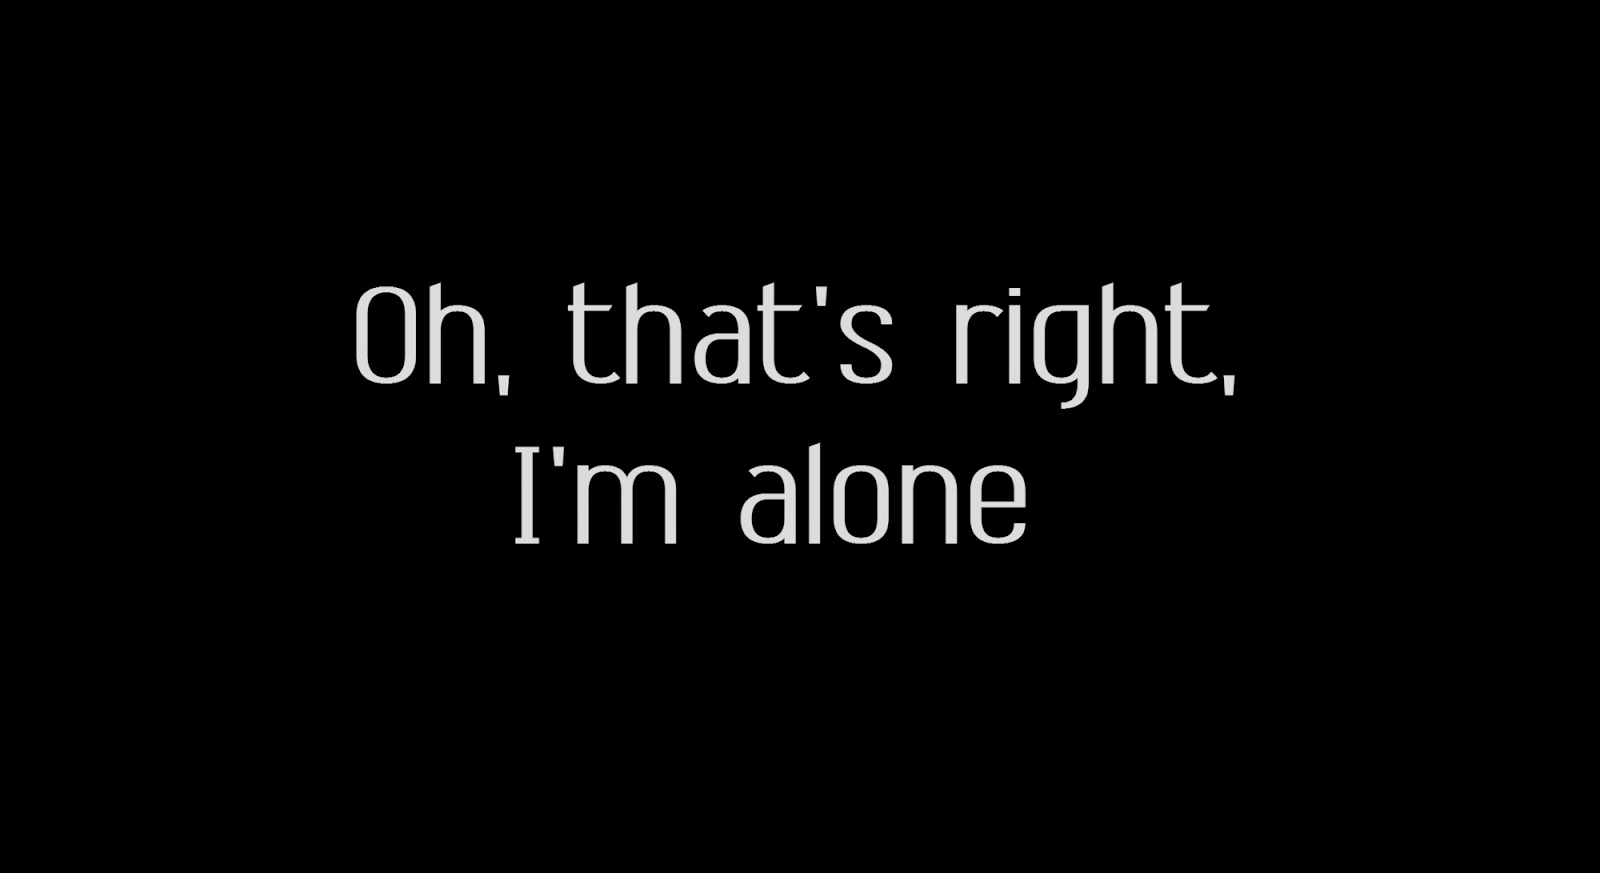 Oh, that's right, I'm alone